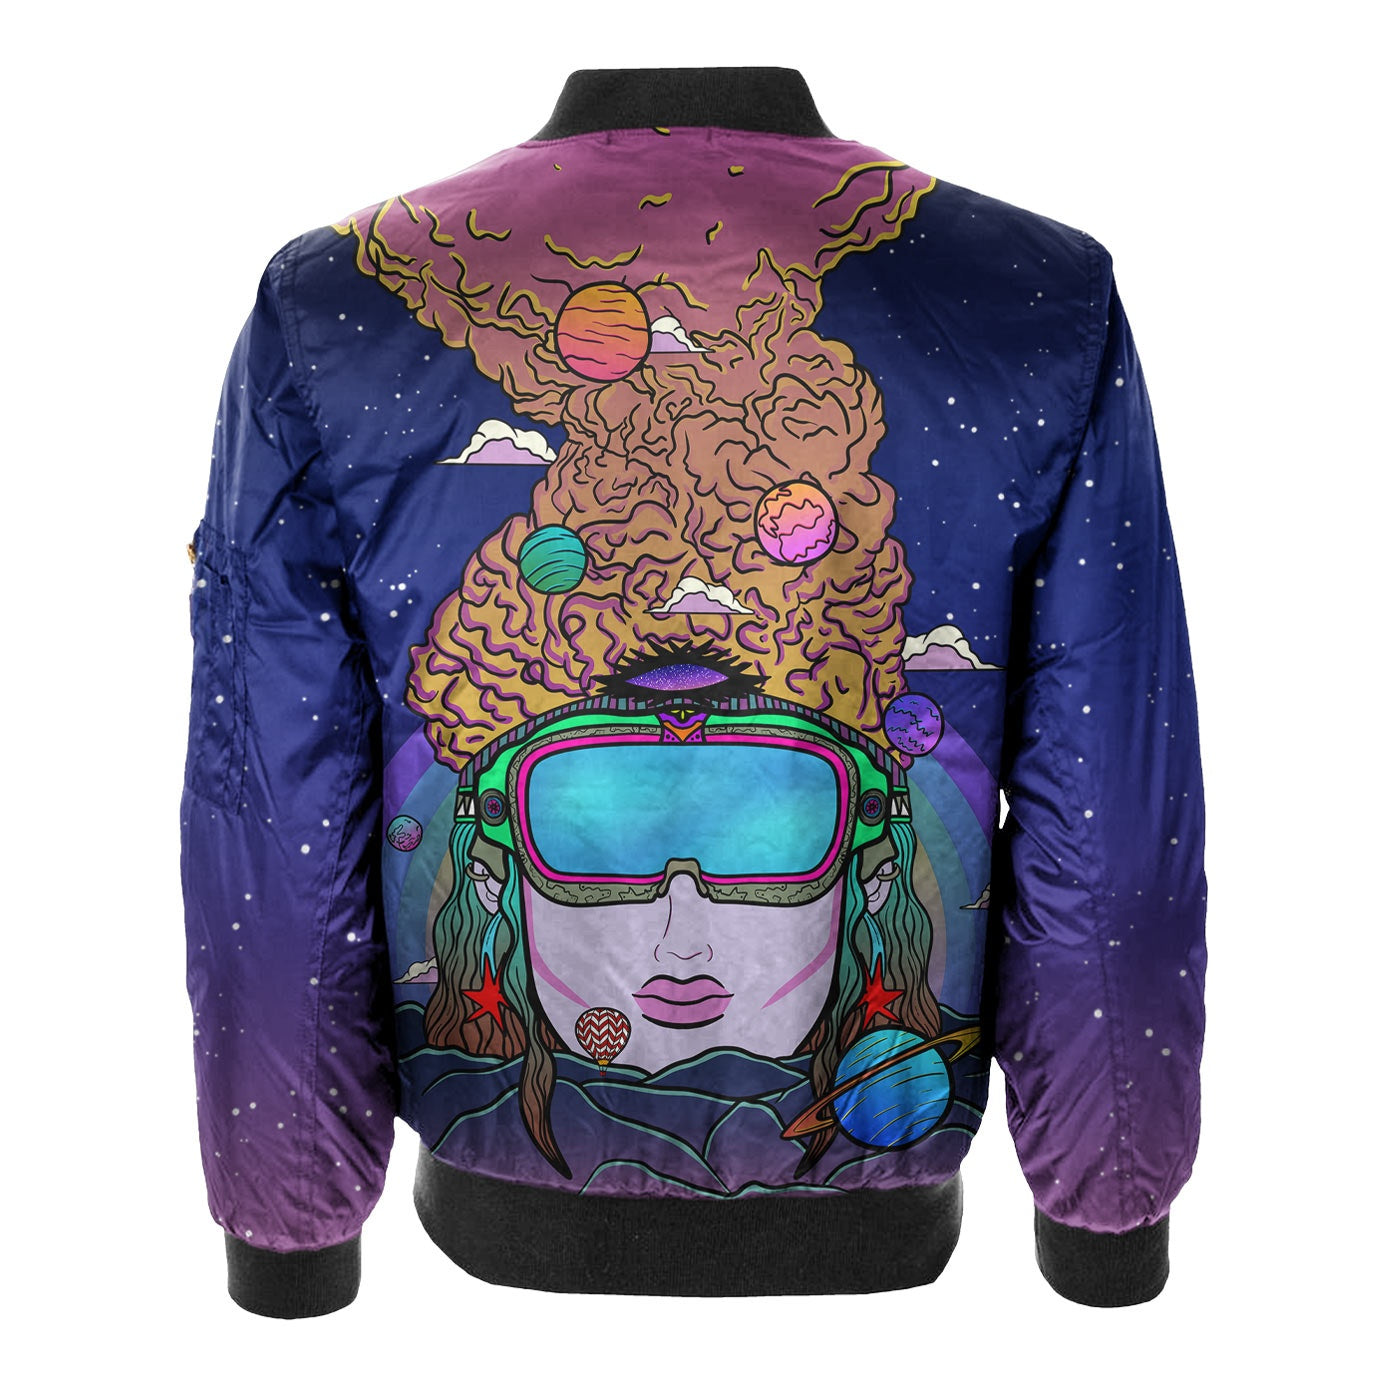 Above All Bomber Jacket